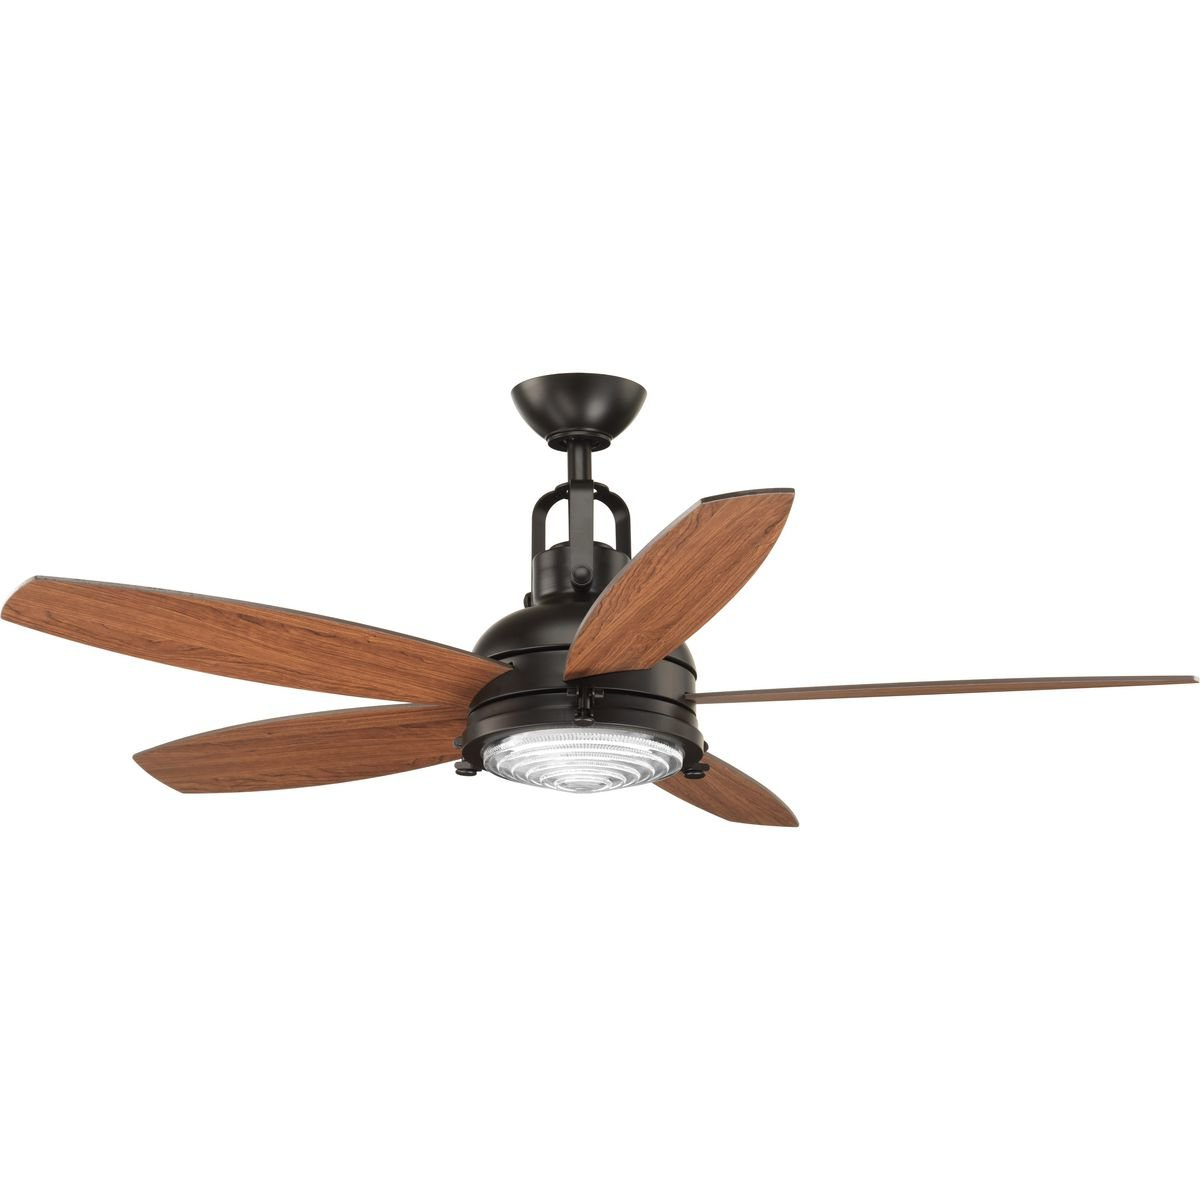 Brown Blades Ceiling Fans (View 8 of 20)